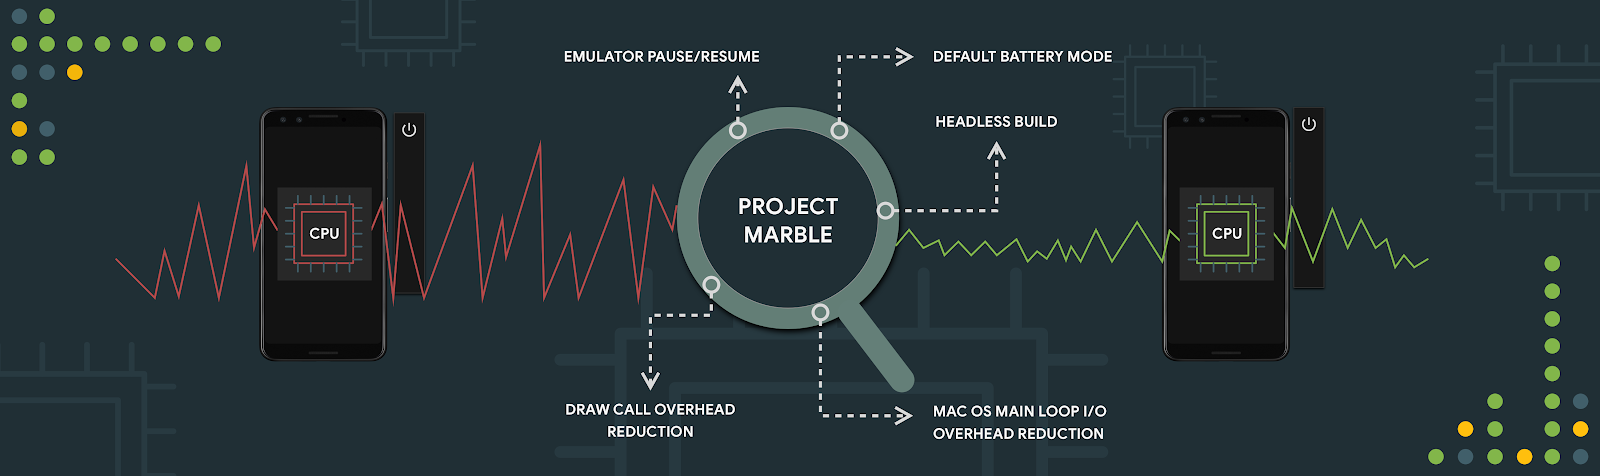 Android Emulator : Project Marble Improvements - Android